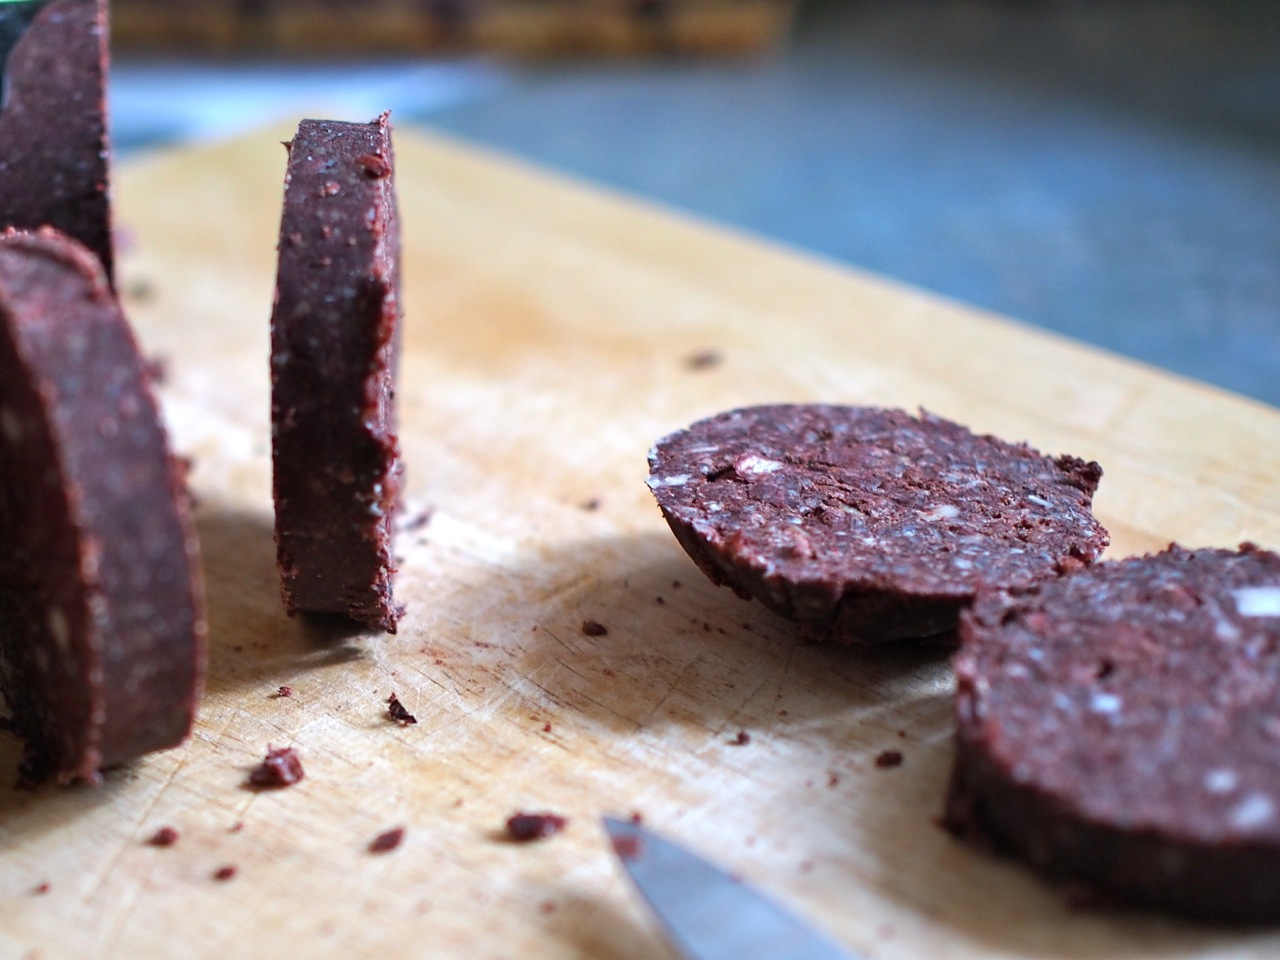 Slicing up black pudding